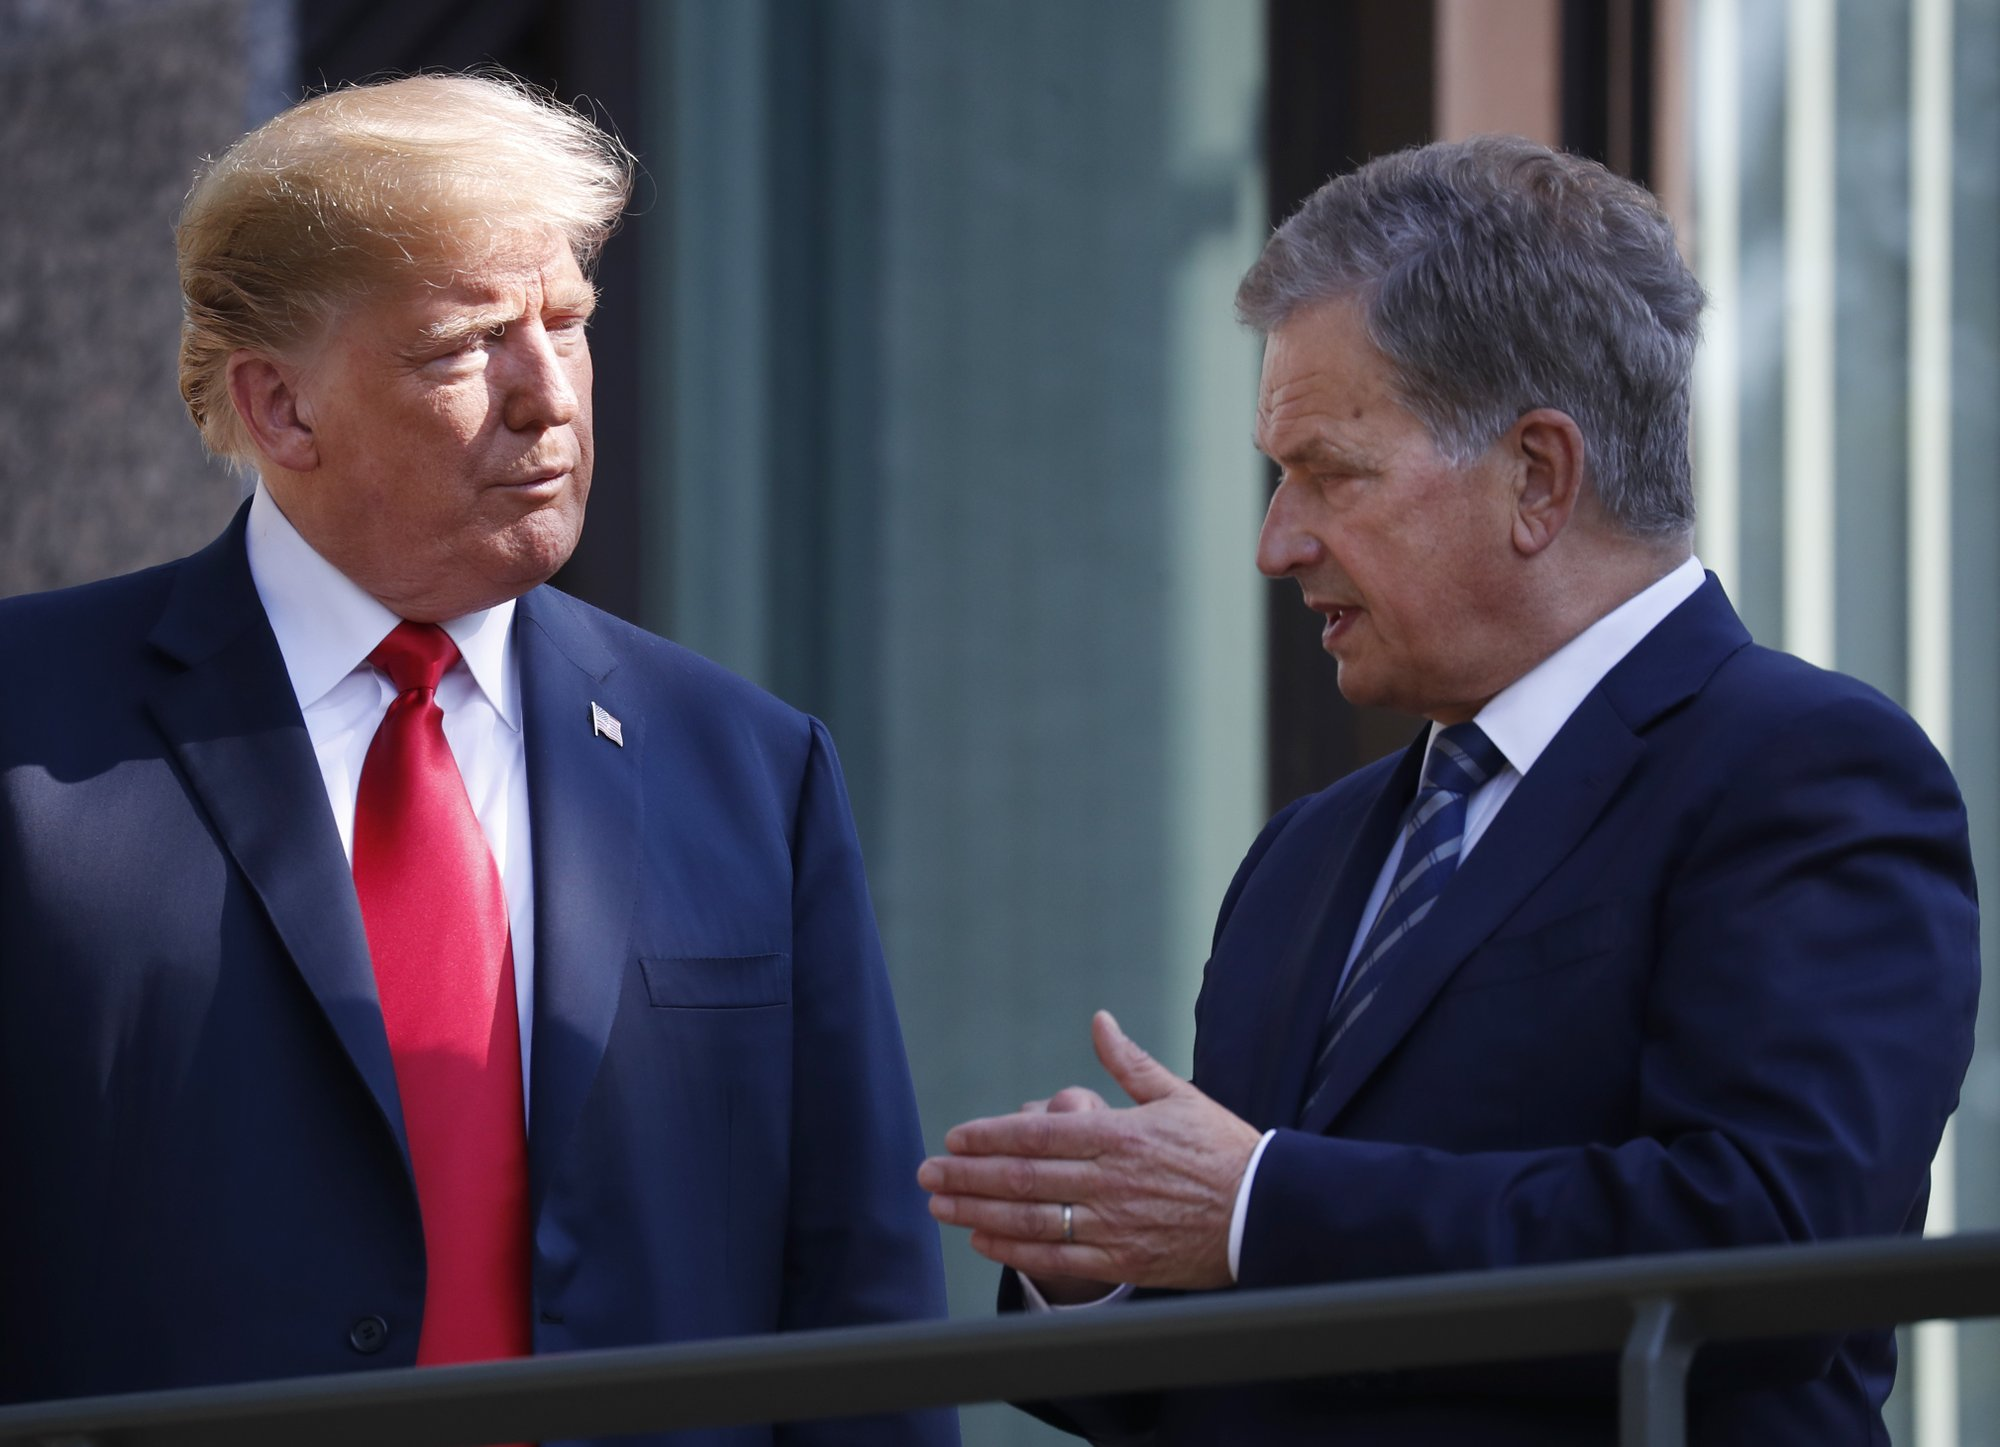 Finland's president rakes memory for source of Trump remark